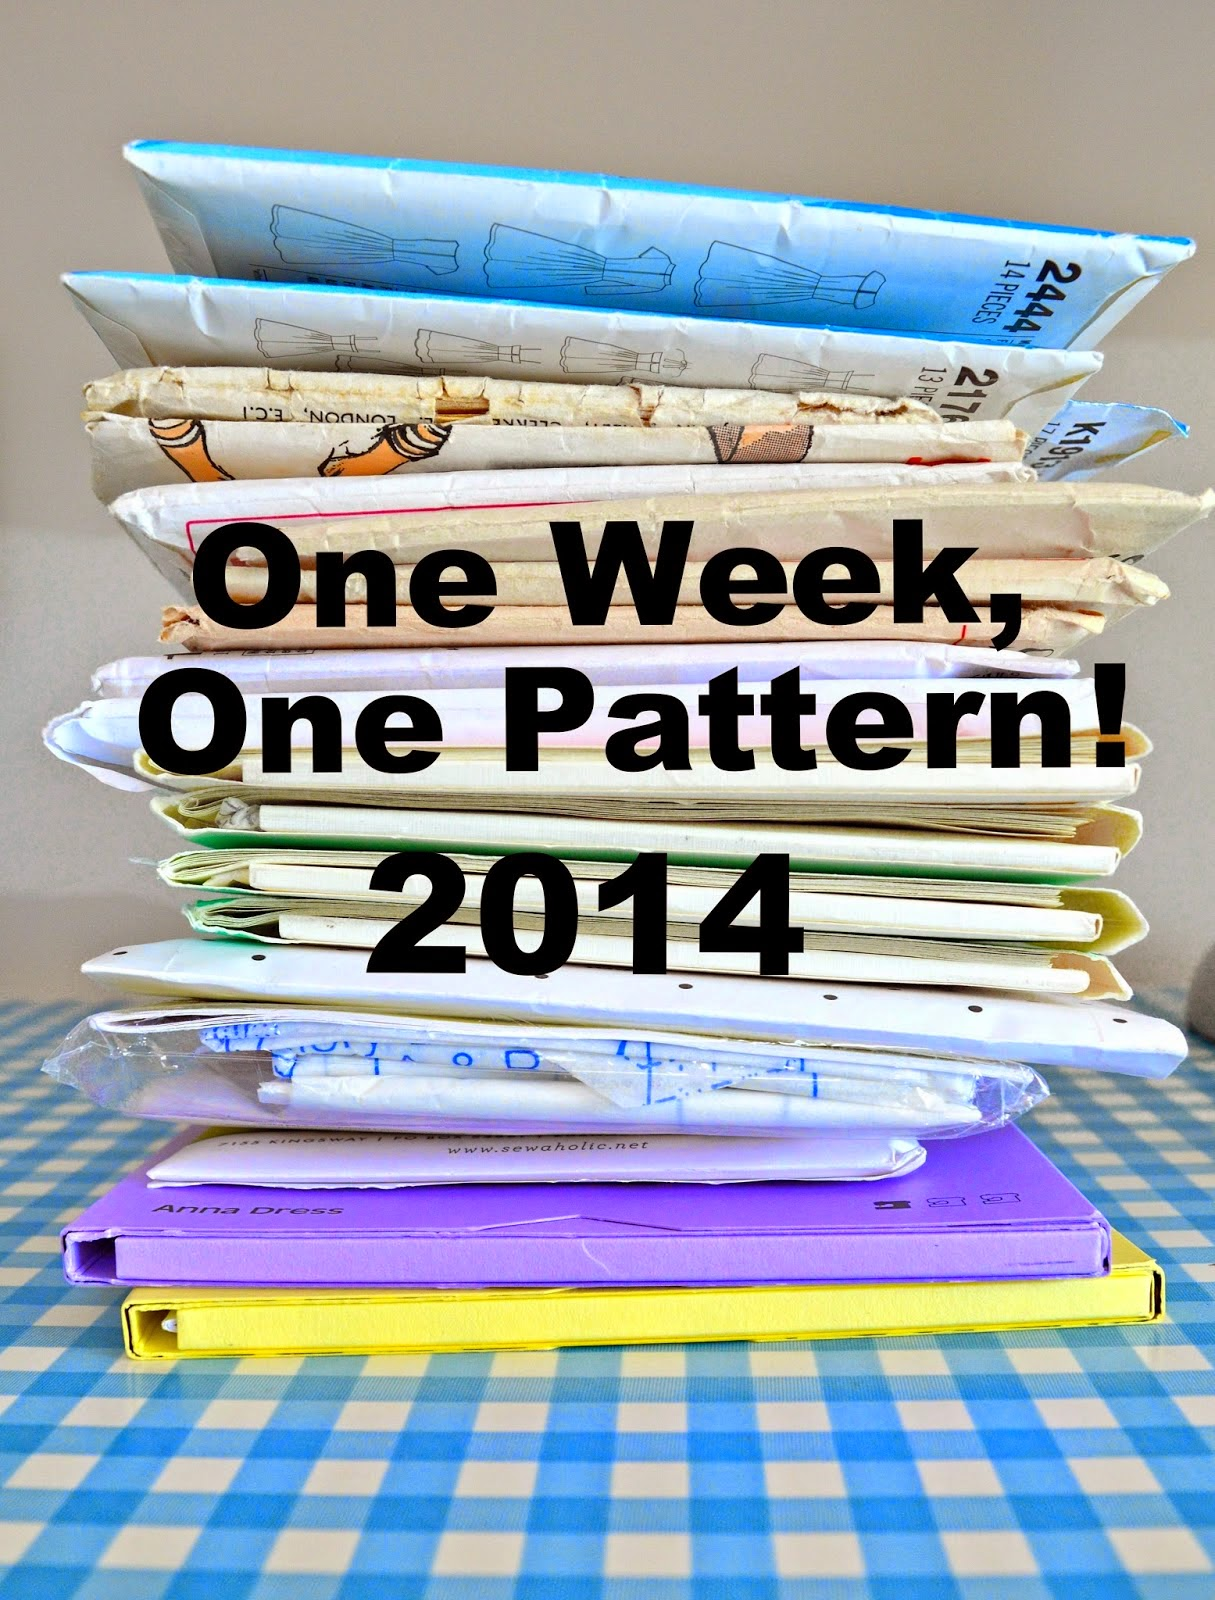 One week one pattern